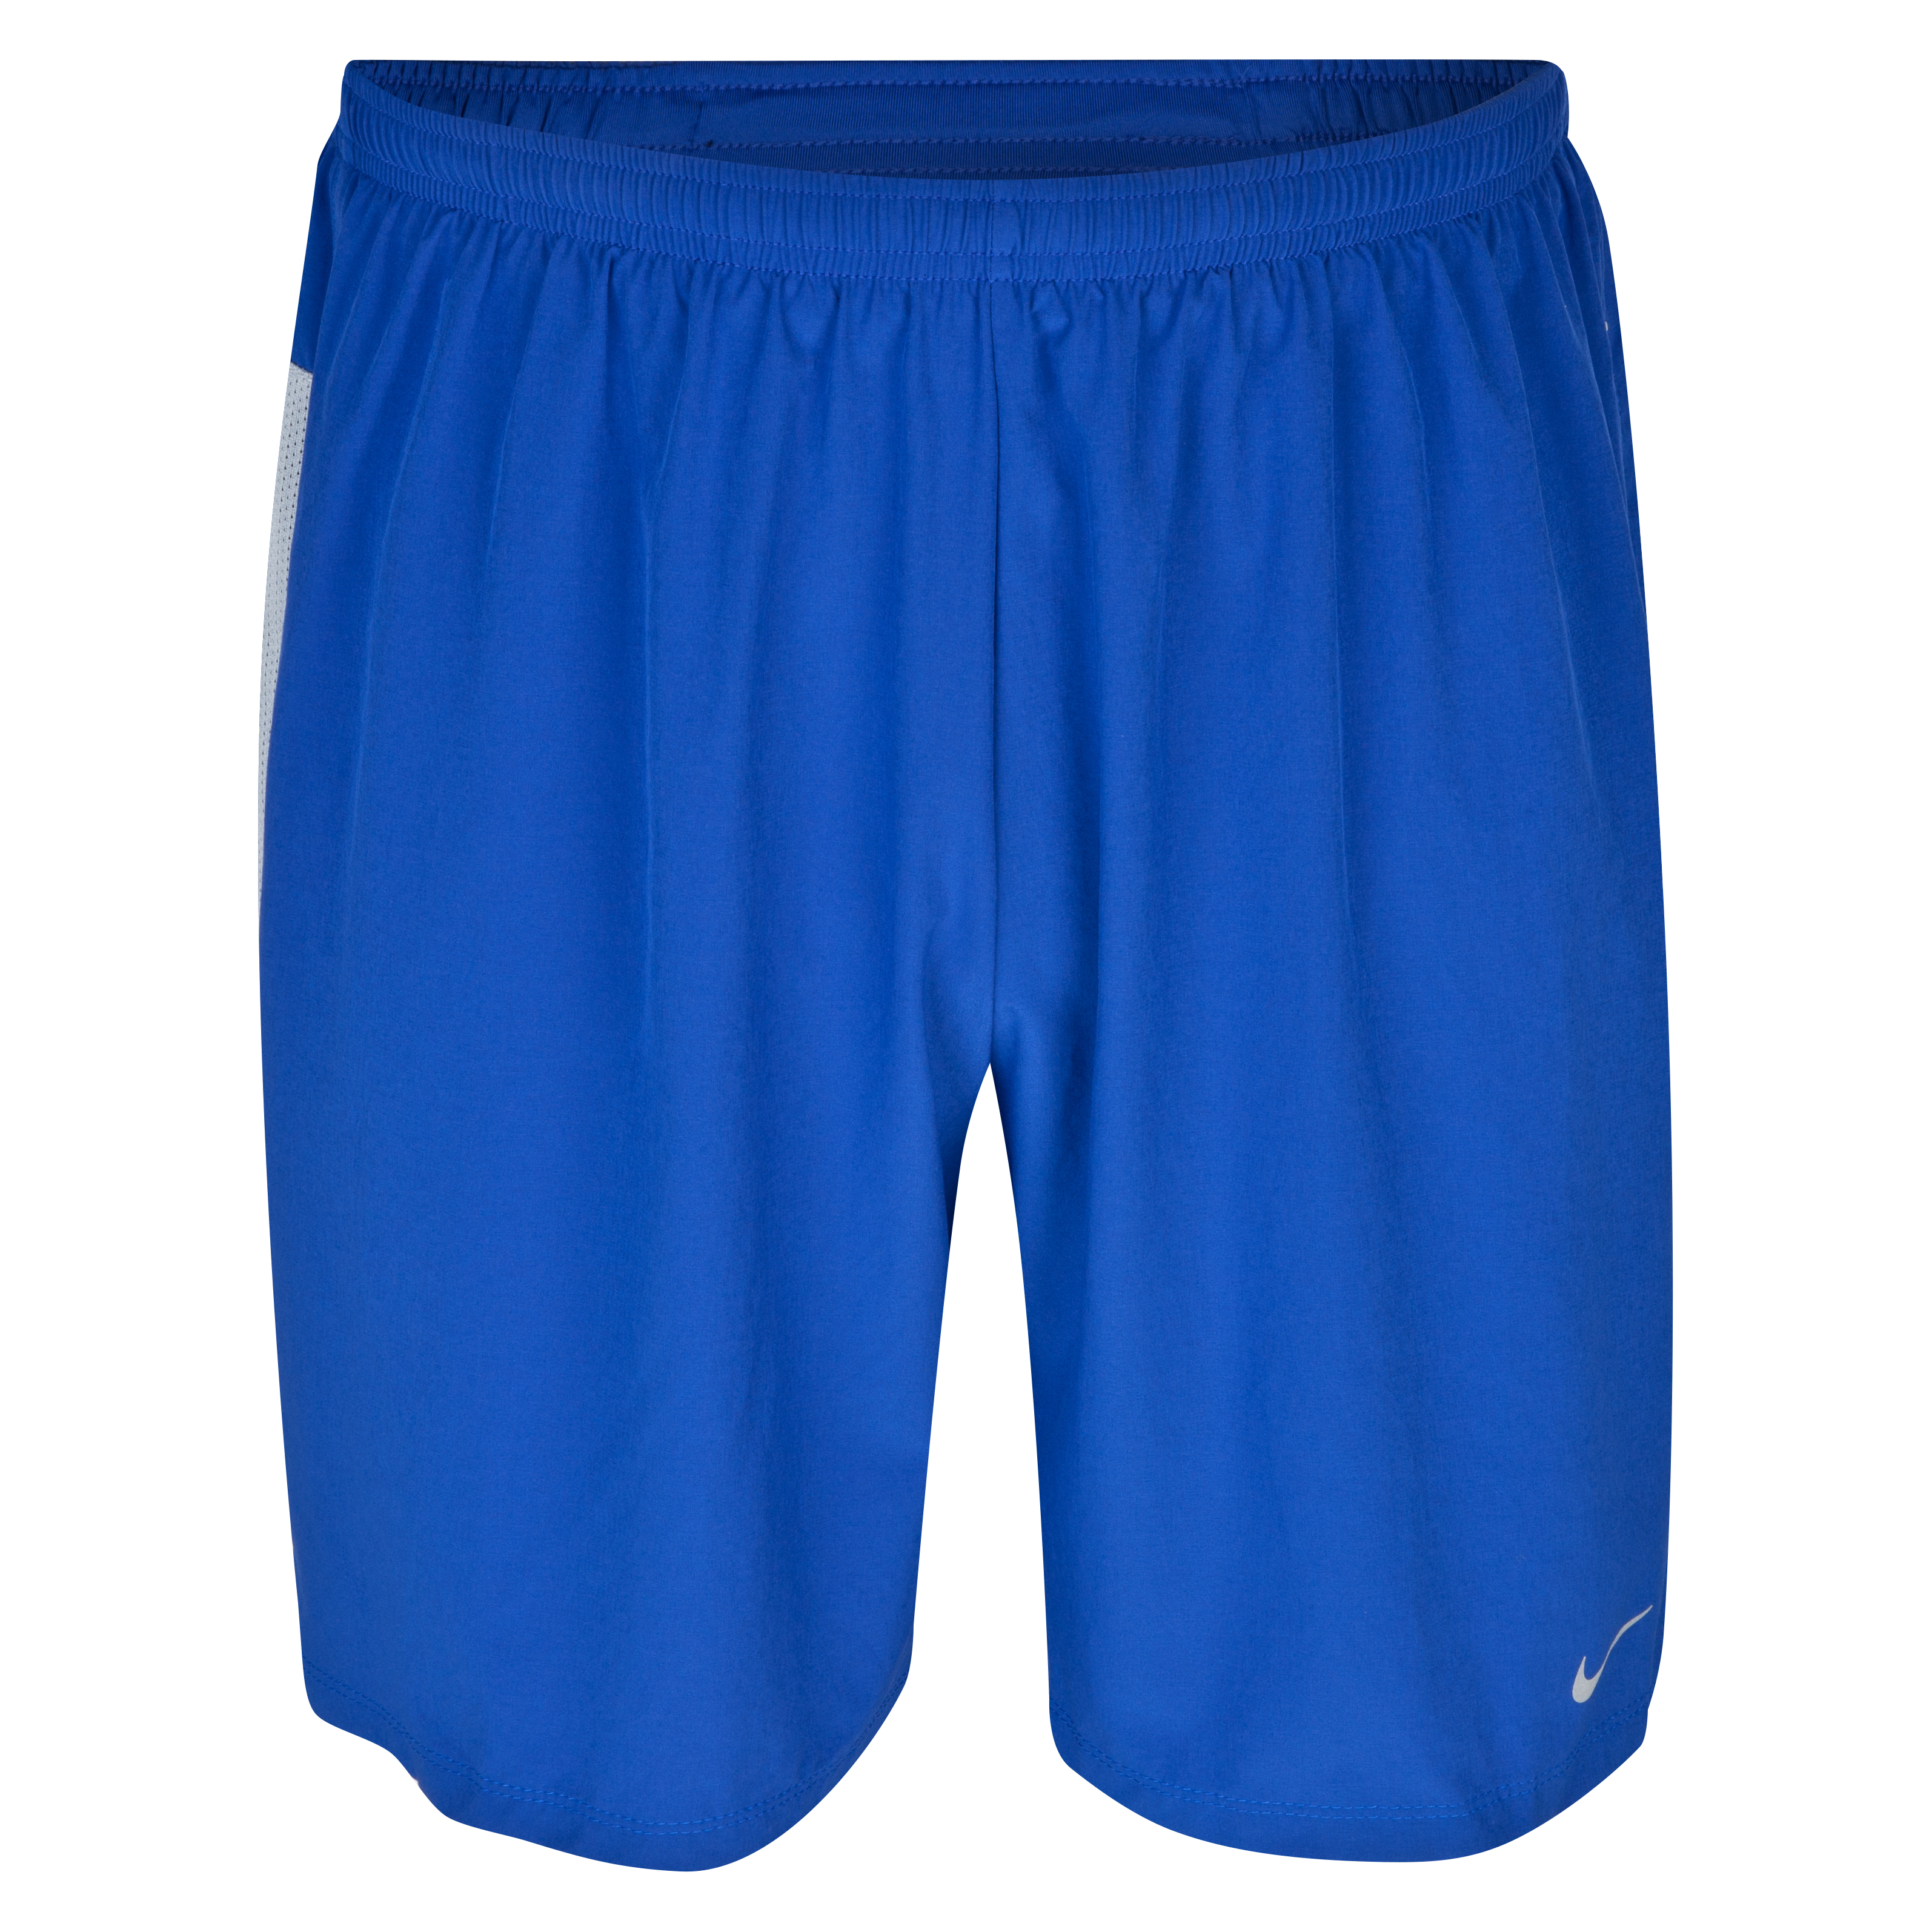 Nike 7inch SW 2-In-1 Short - Hyper Blue/Worf Grey/Reflective Silver